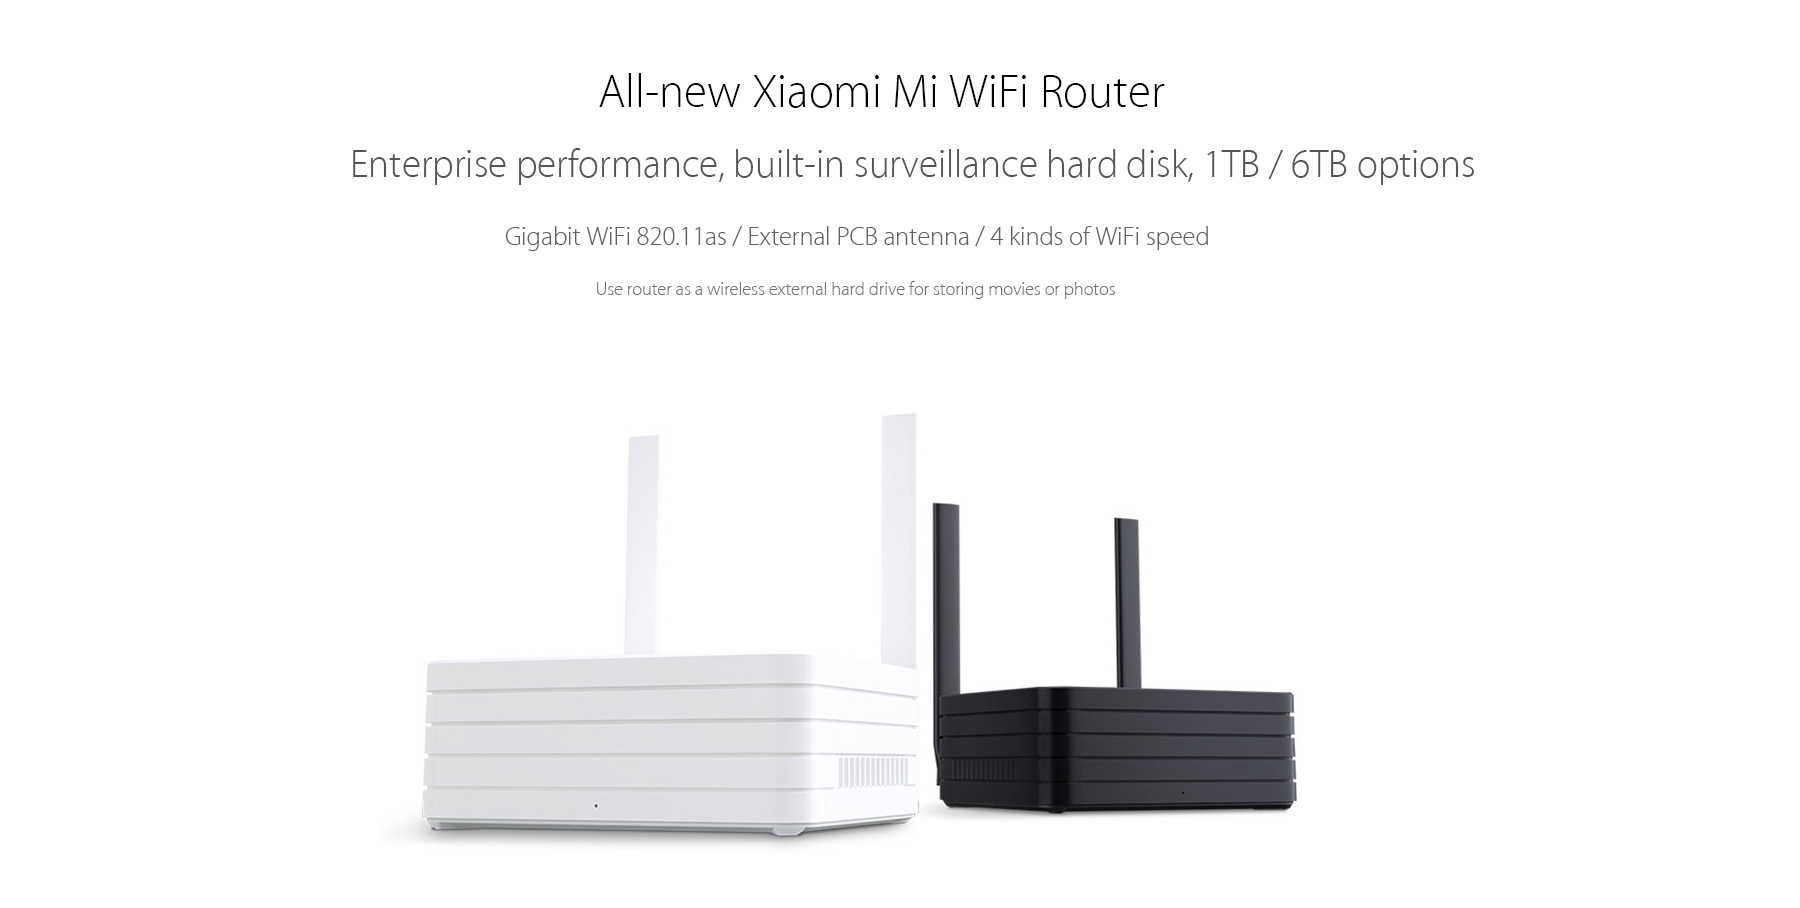 All-new XiaoMi Mi WiFi Router for iPhone 6S / 6S Plus / 6 / 6 Plus / iPad Pro / Samsung S6 / Edge S6 / HTC ONE M9 / HUAWEI P8